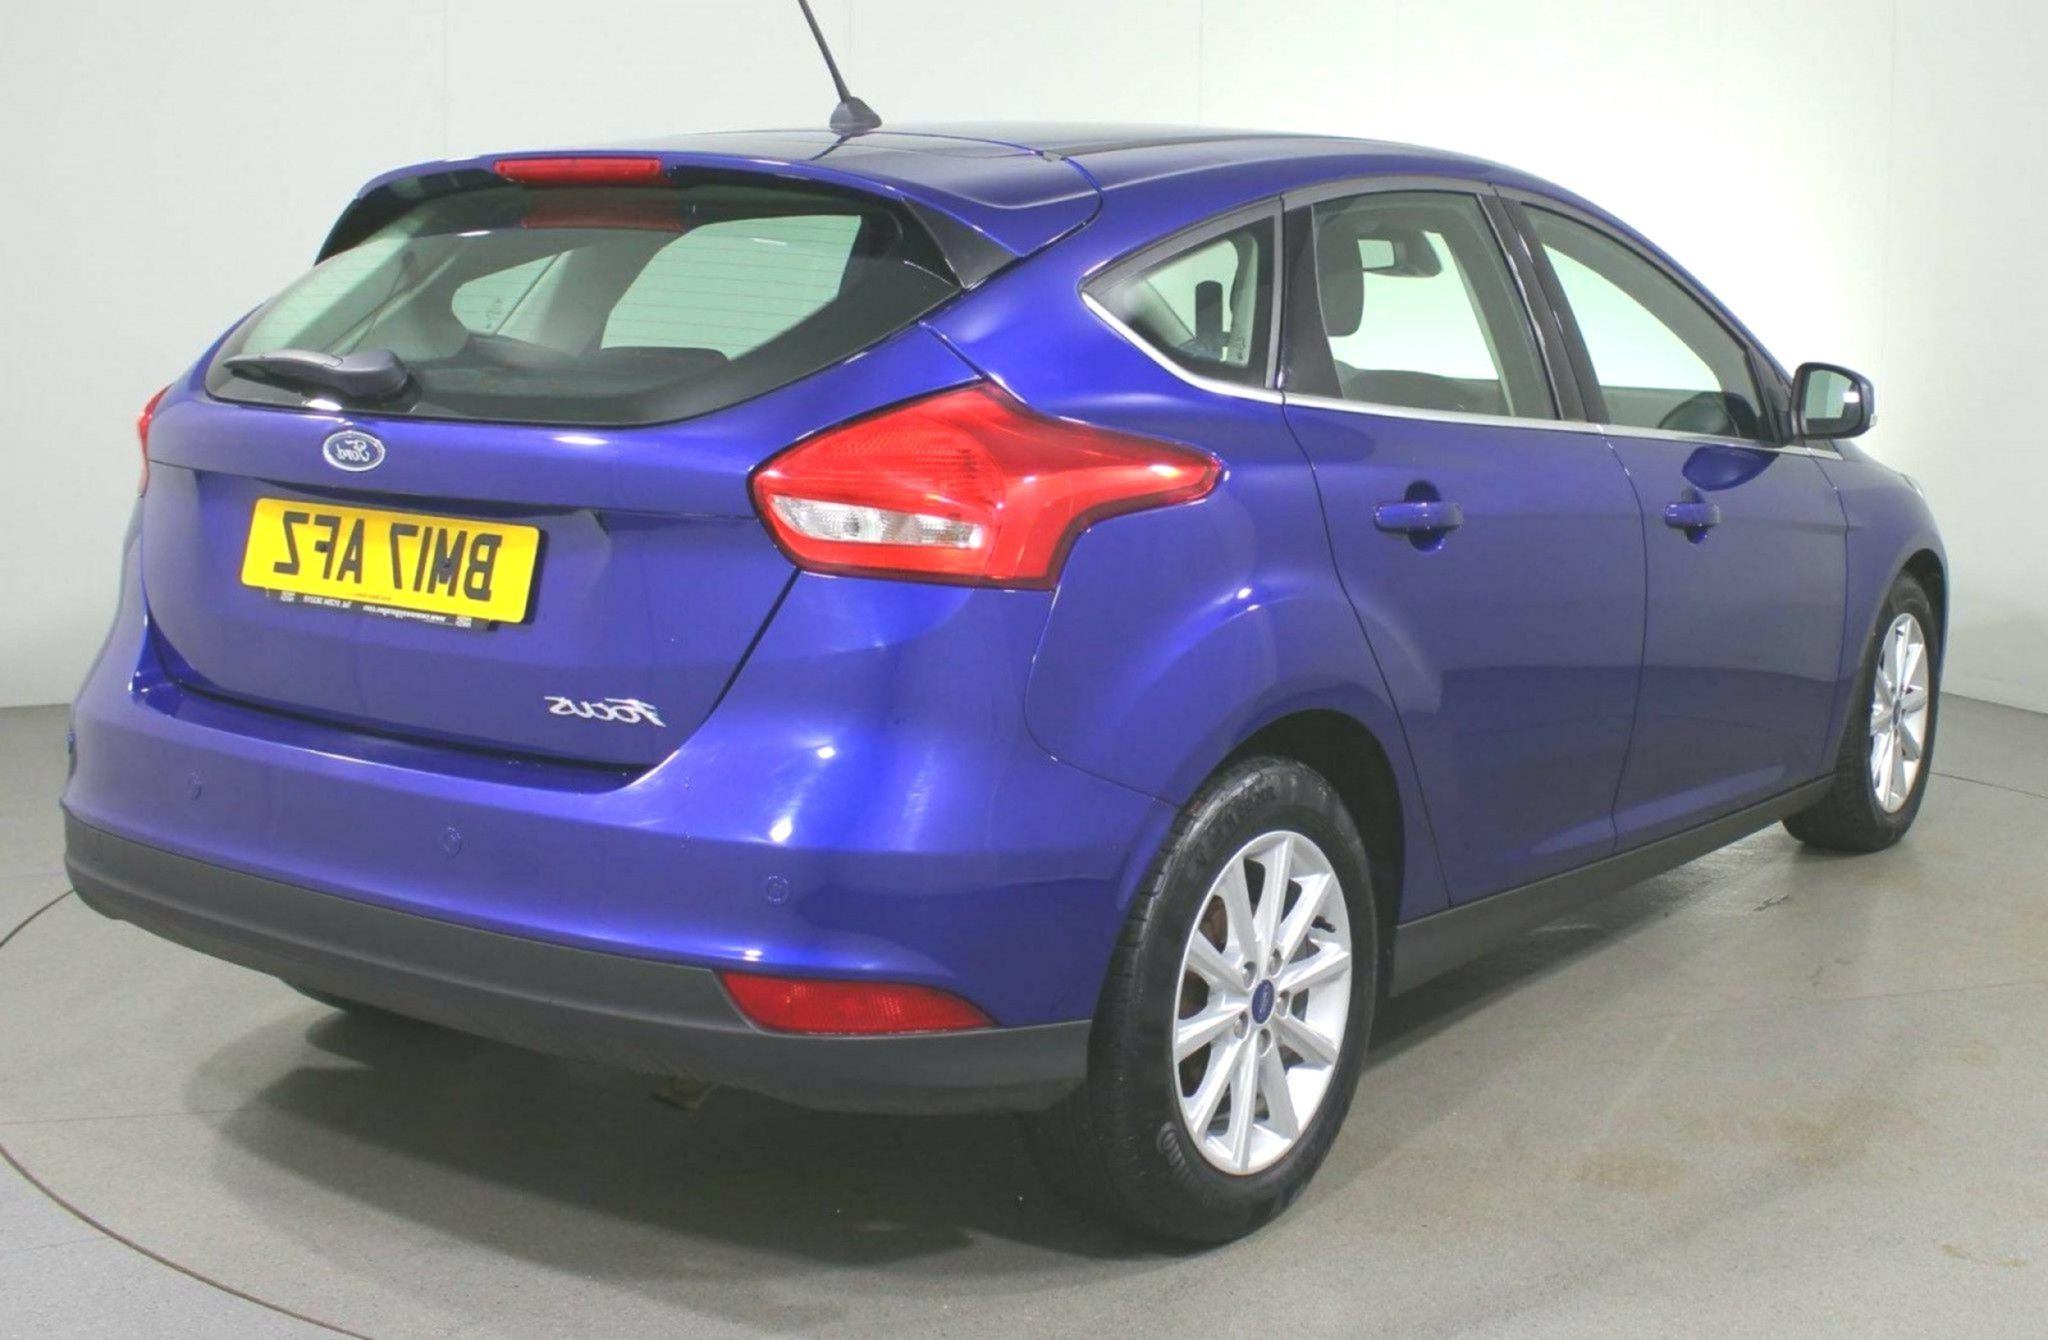 Ford Focus 15 Tdci 120 Titanium 5dr For Sale In 2020 Ford Focus